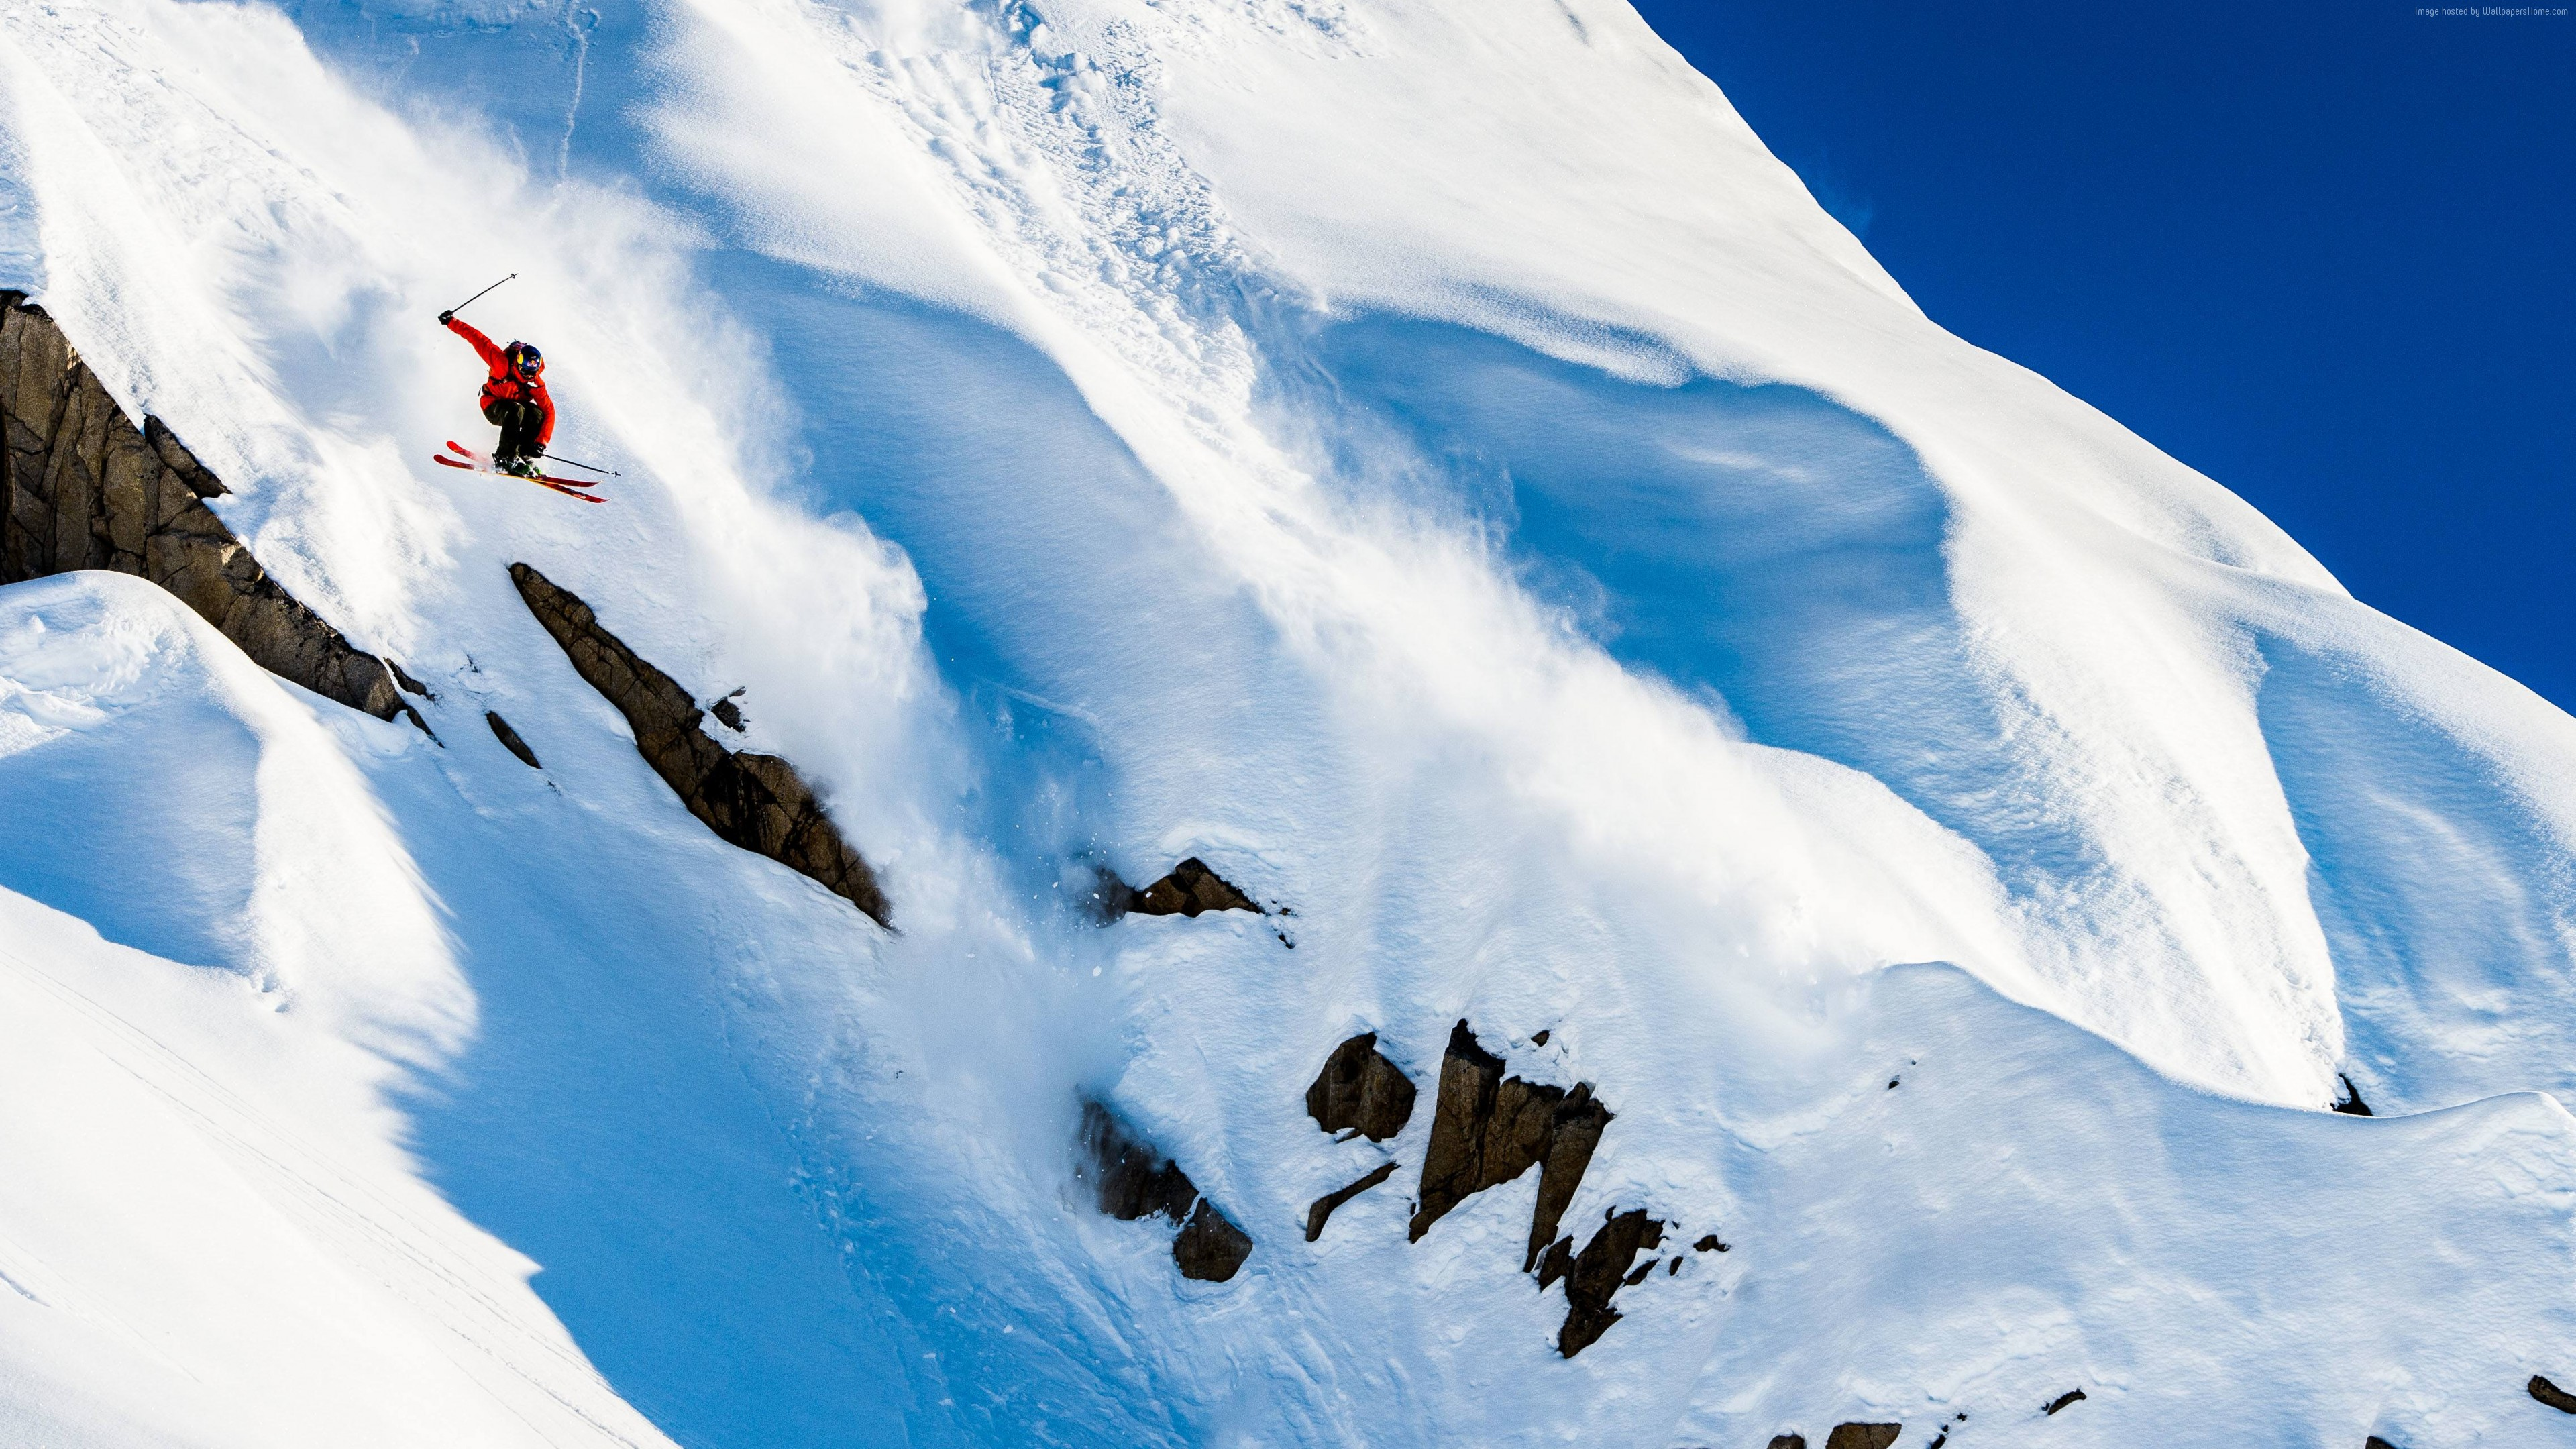 Wallpaper Markus Eder, 5k, 4k wallpaper, skiing, Days of my youth, mountains, snow, winter, Sport